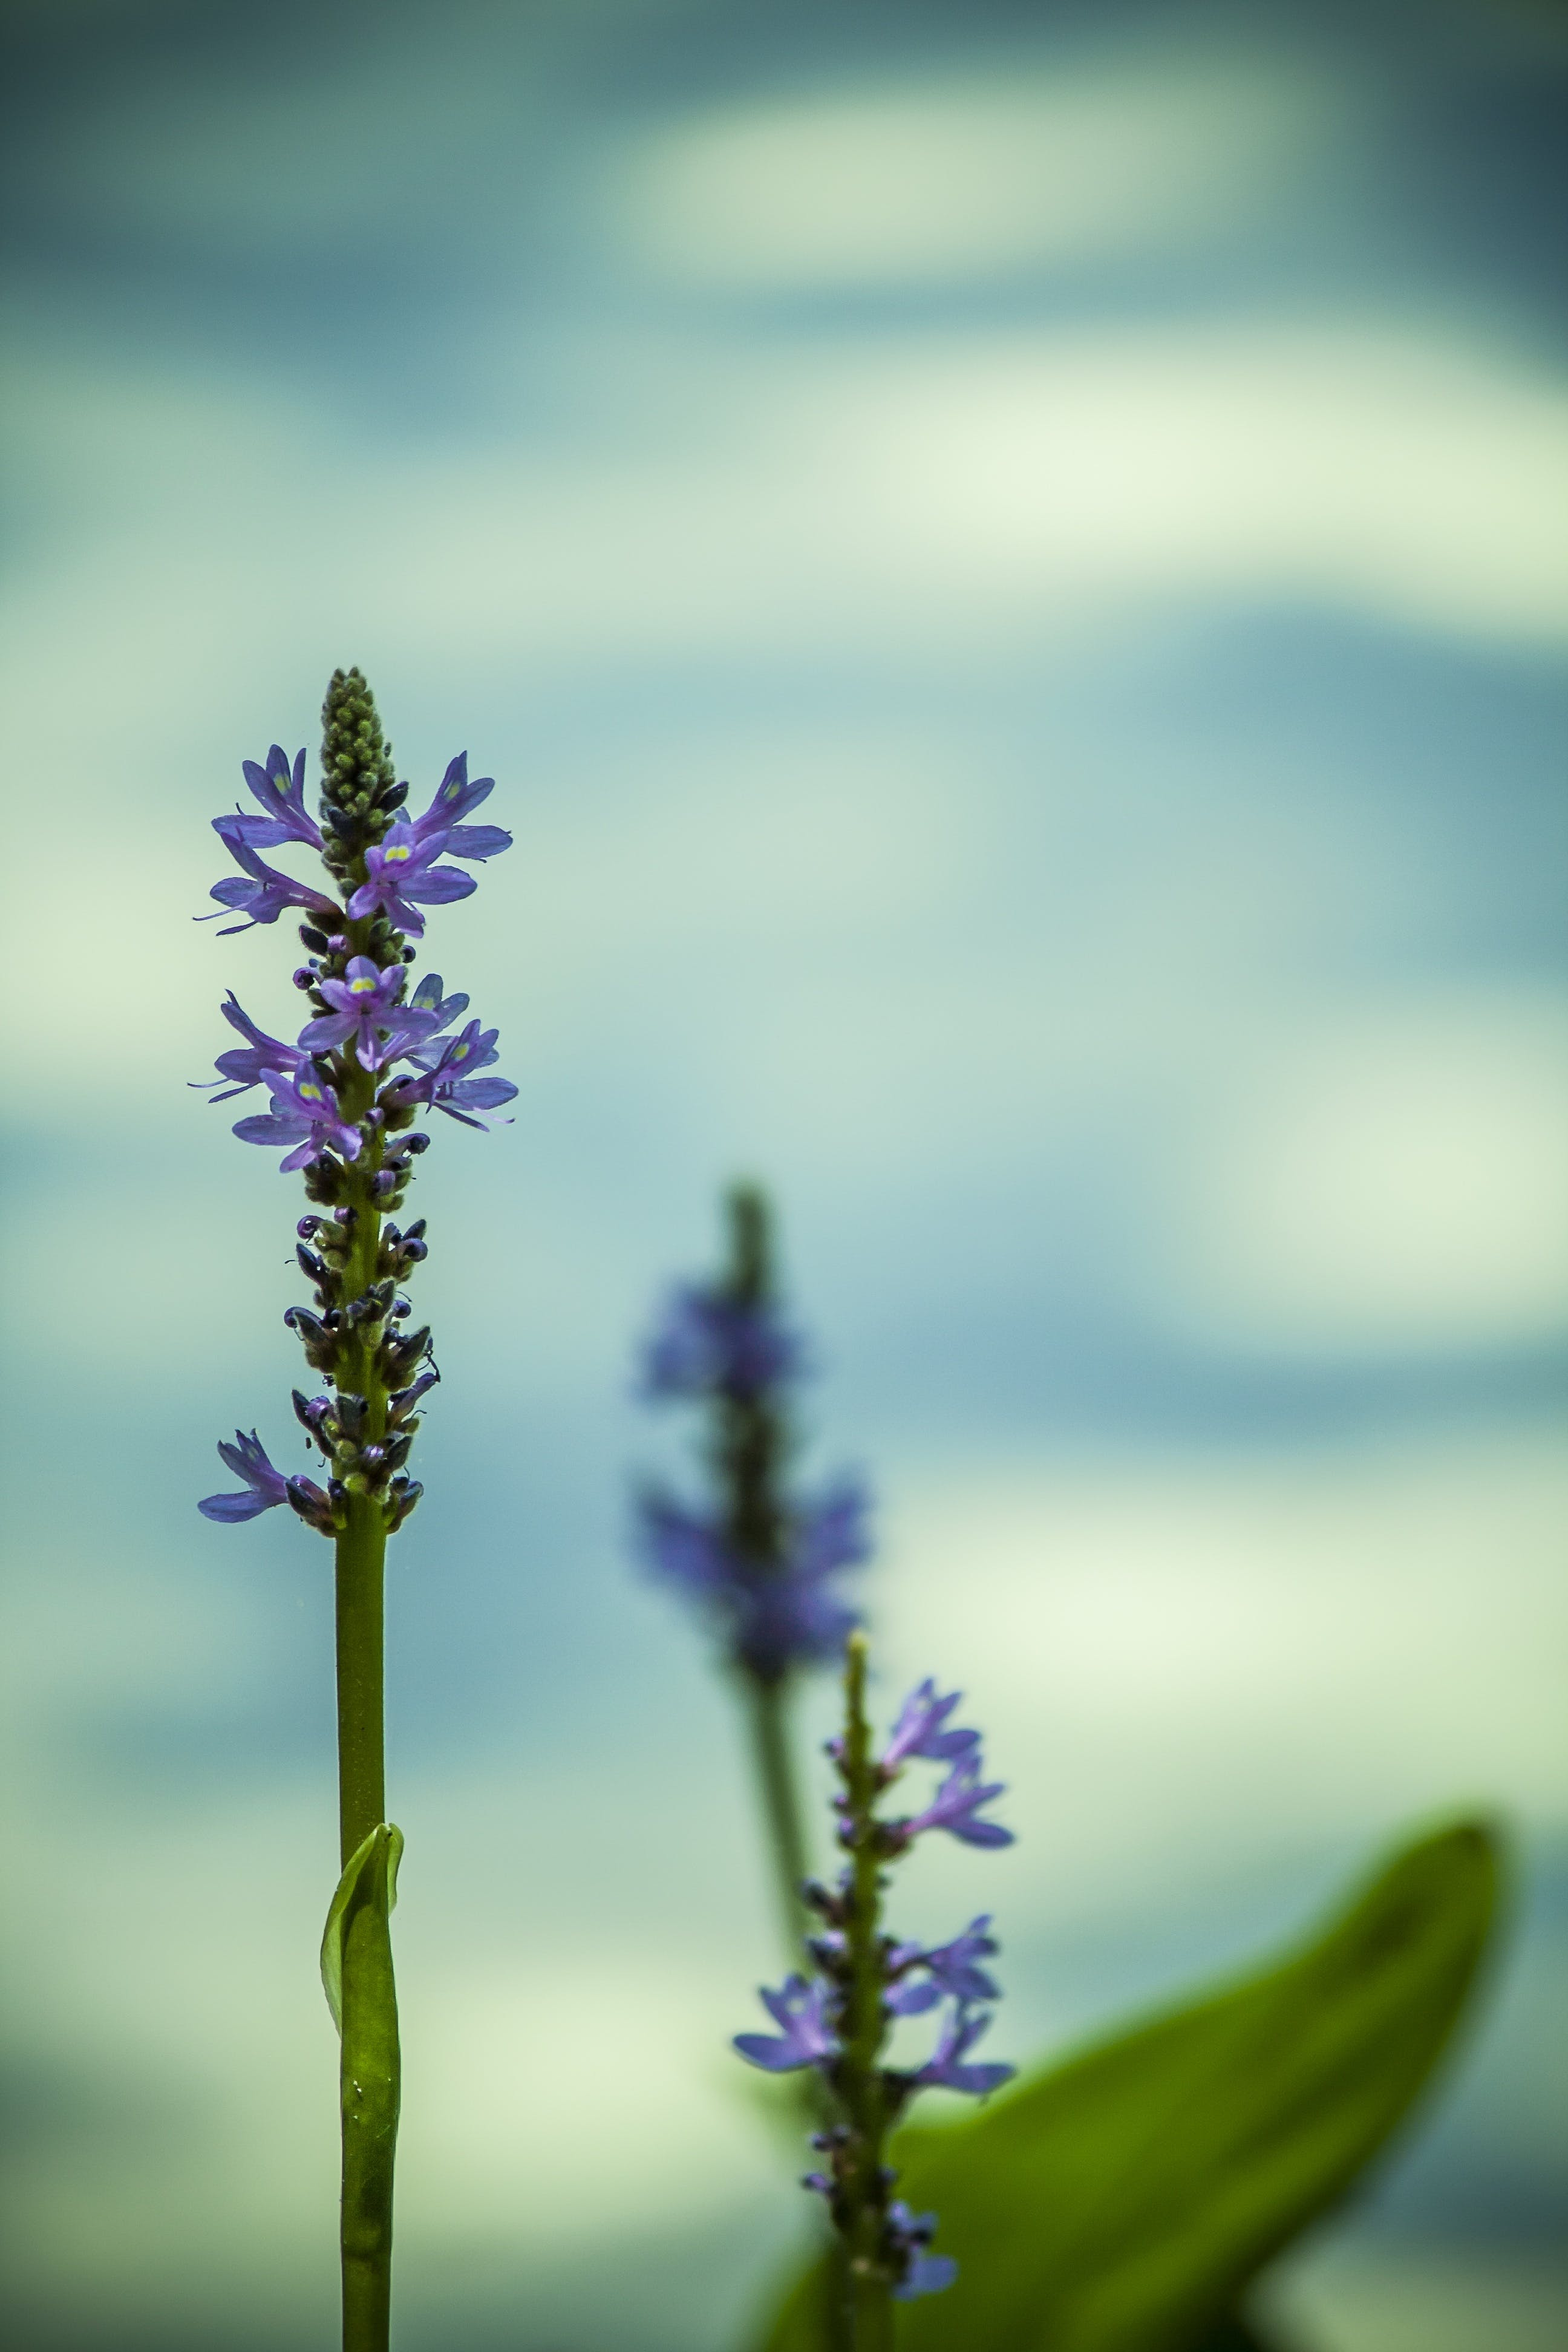 Purple Flowering Plant in Close Up